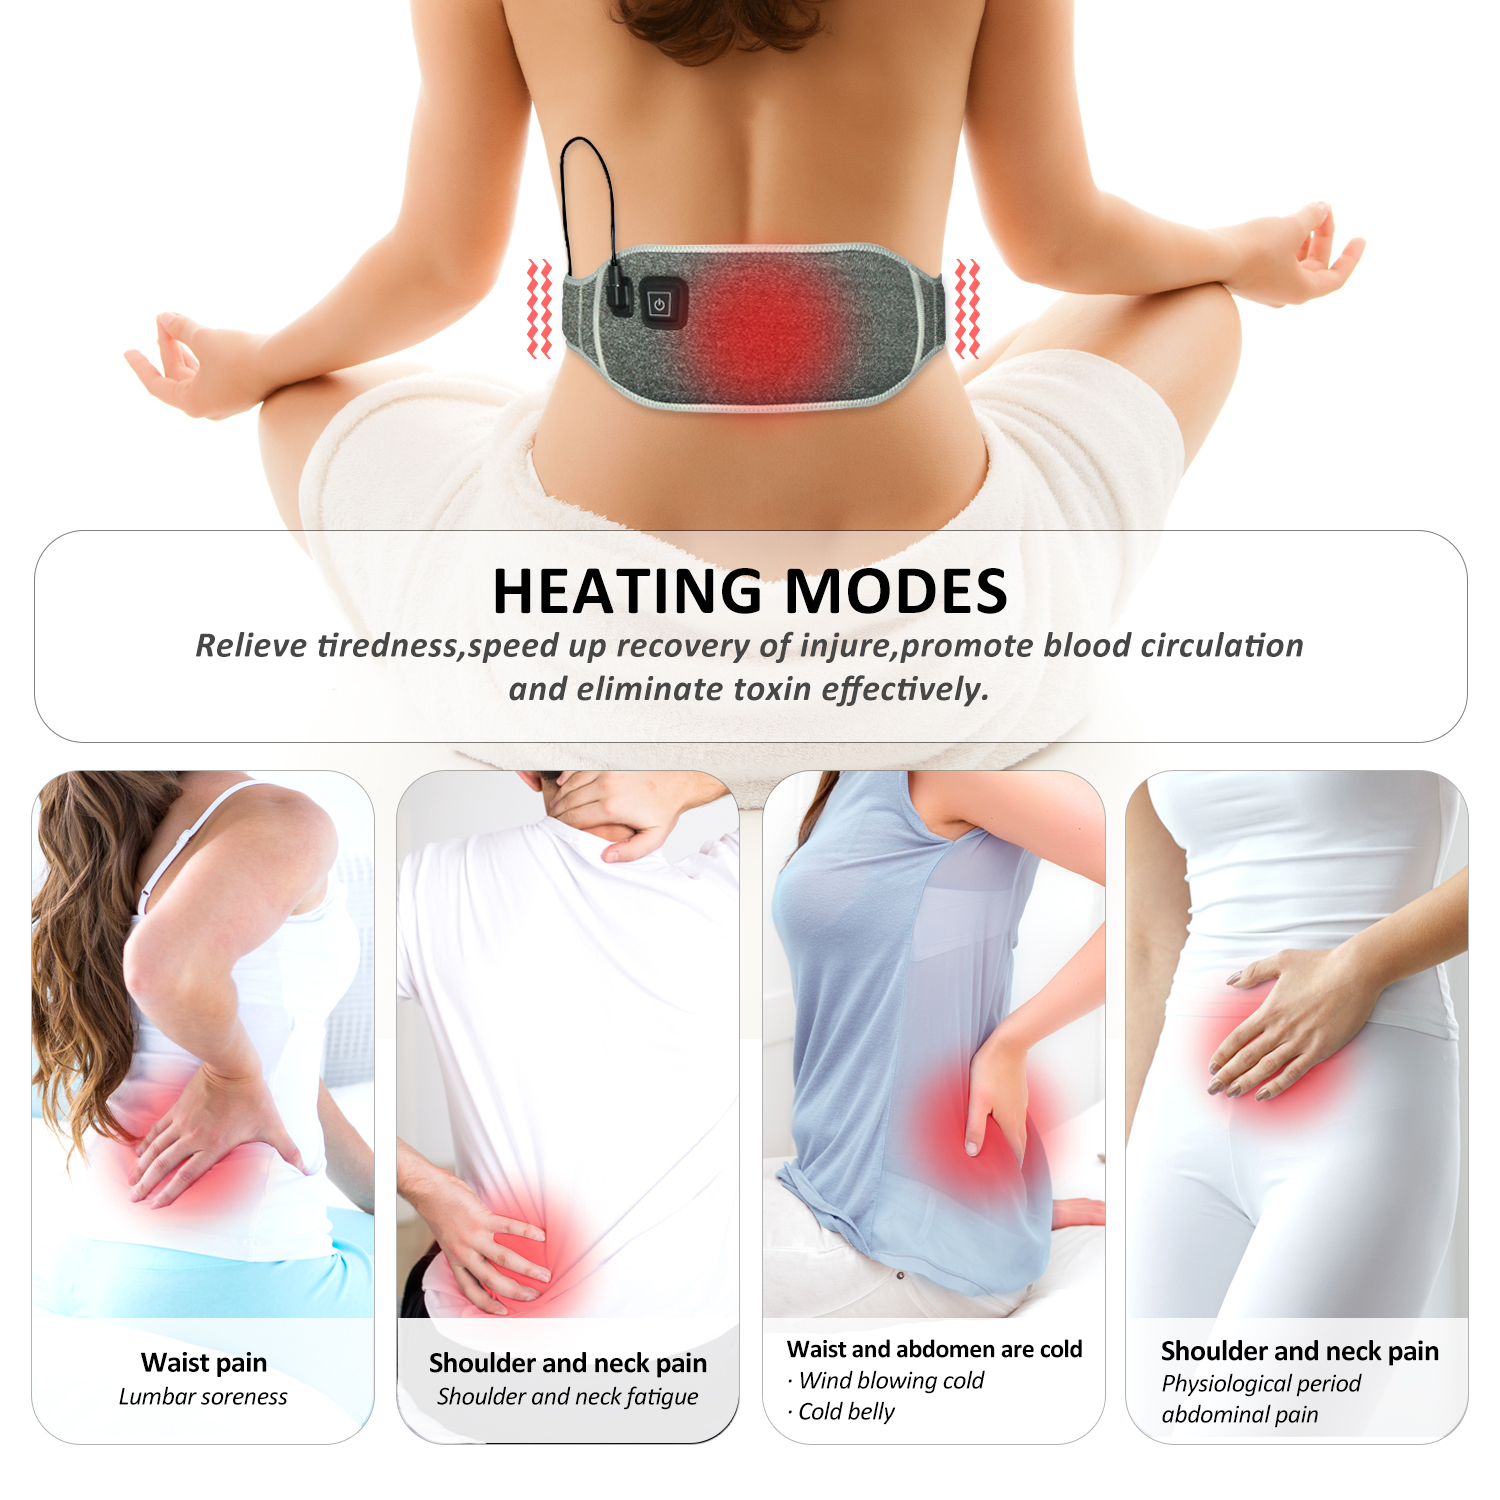 Liiva Fast Heating Waist Belt Wrap / Back Pain Relief Heat Therapy Pad / Portable 5V USB Powered Heating Pad for Head, Neck, Shoulders, Belly, Knees Pain Relief - Suitable for Men and Women